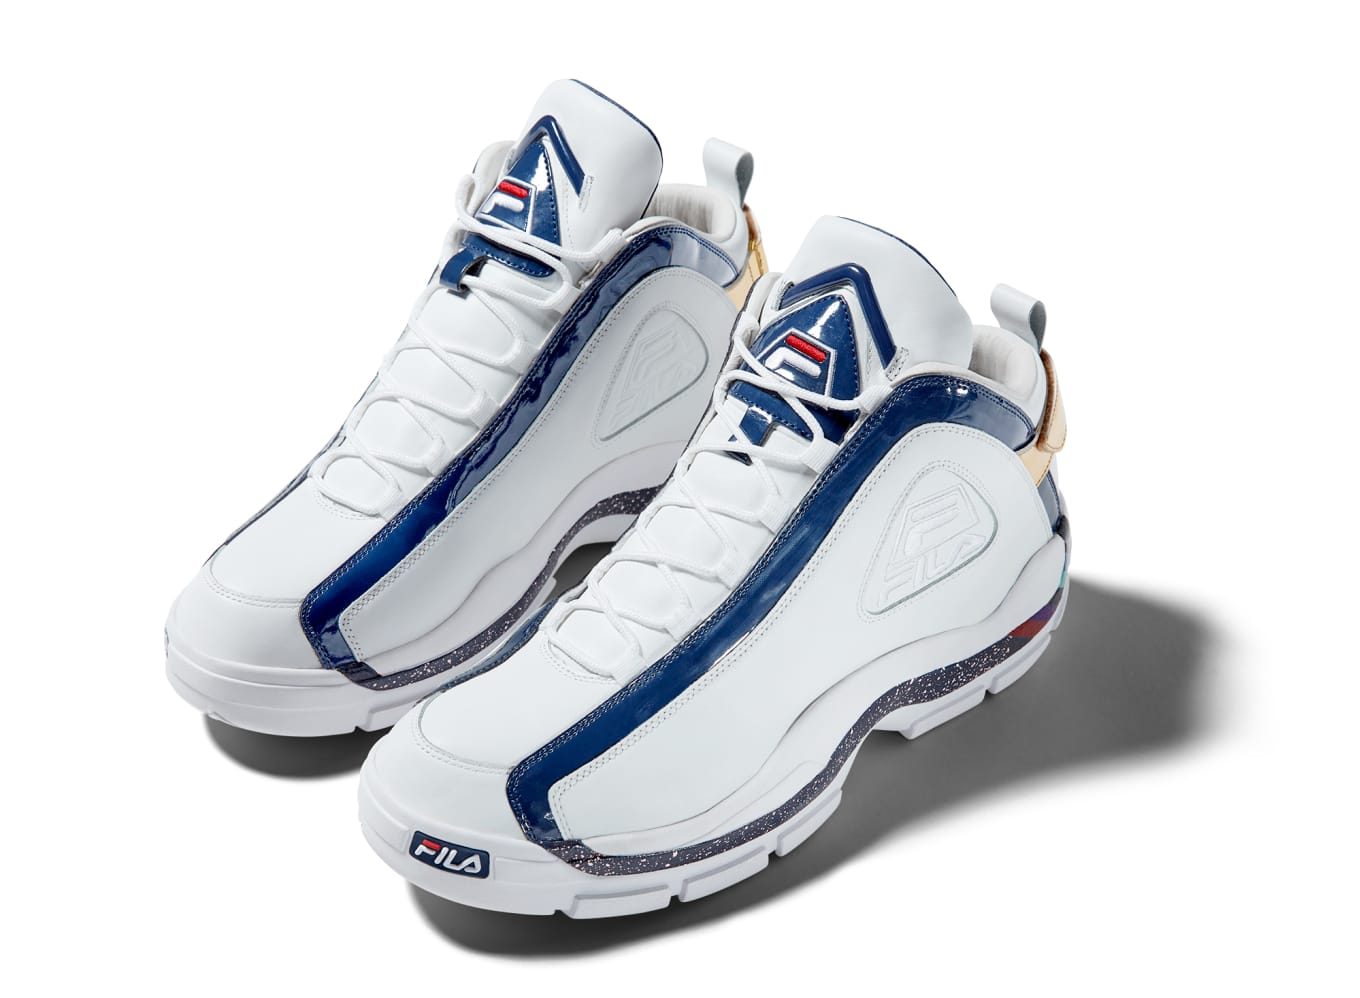 db5ff72e9df Fila Honors Grant Hill With Updated Signature Sneaker